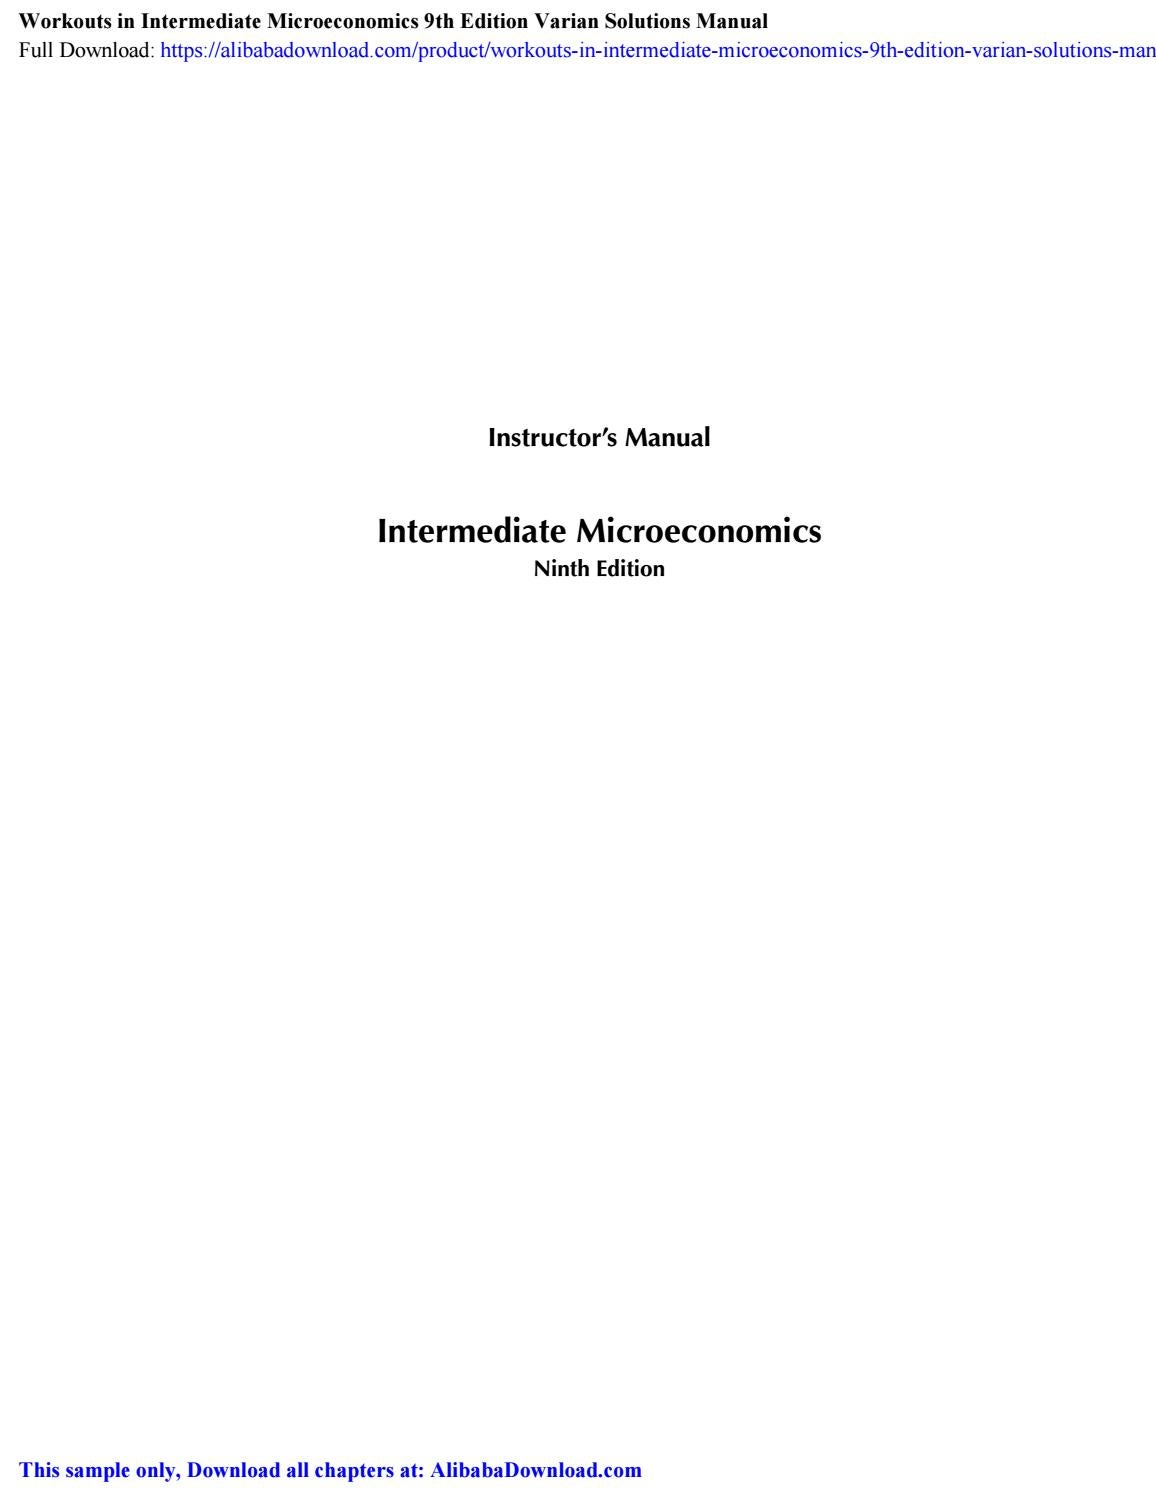 Workouts In Intermediate Microeconomics 9th Edition Varian Solutions Manual By Alibabageta Issuu